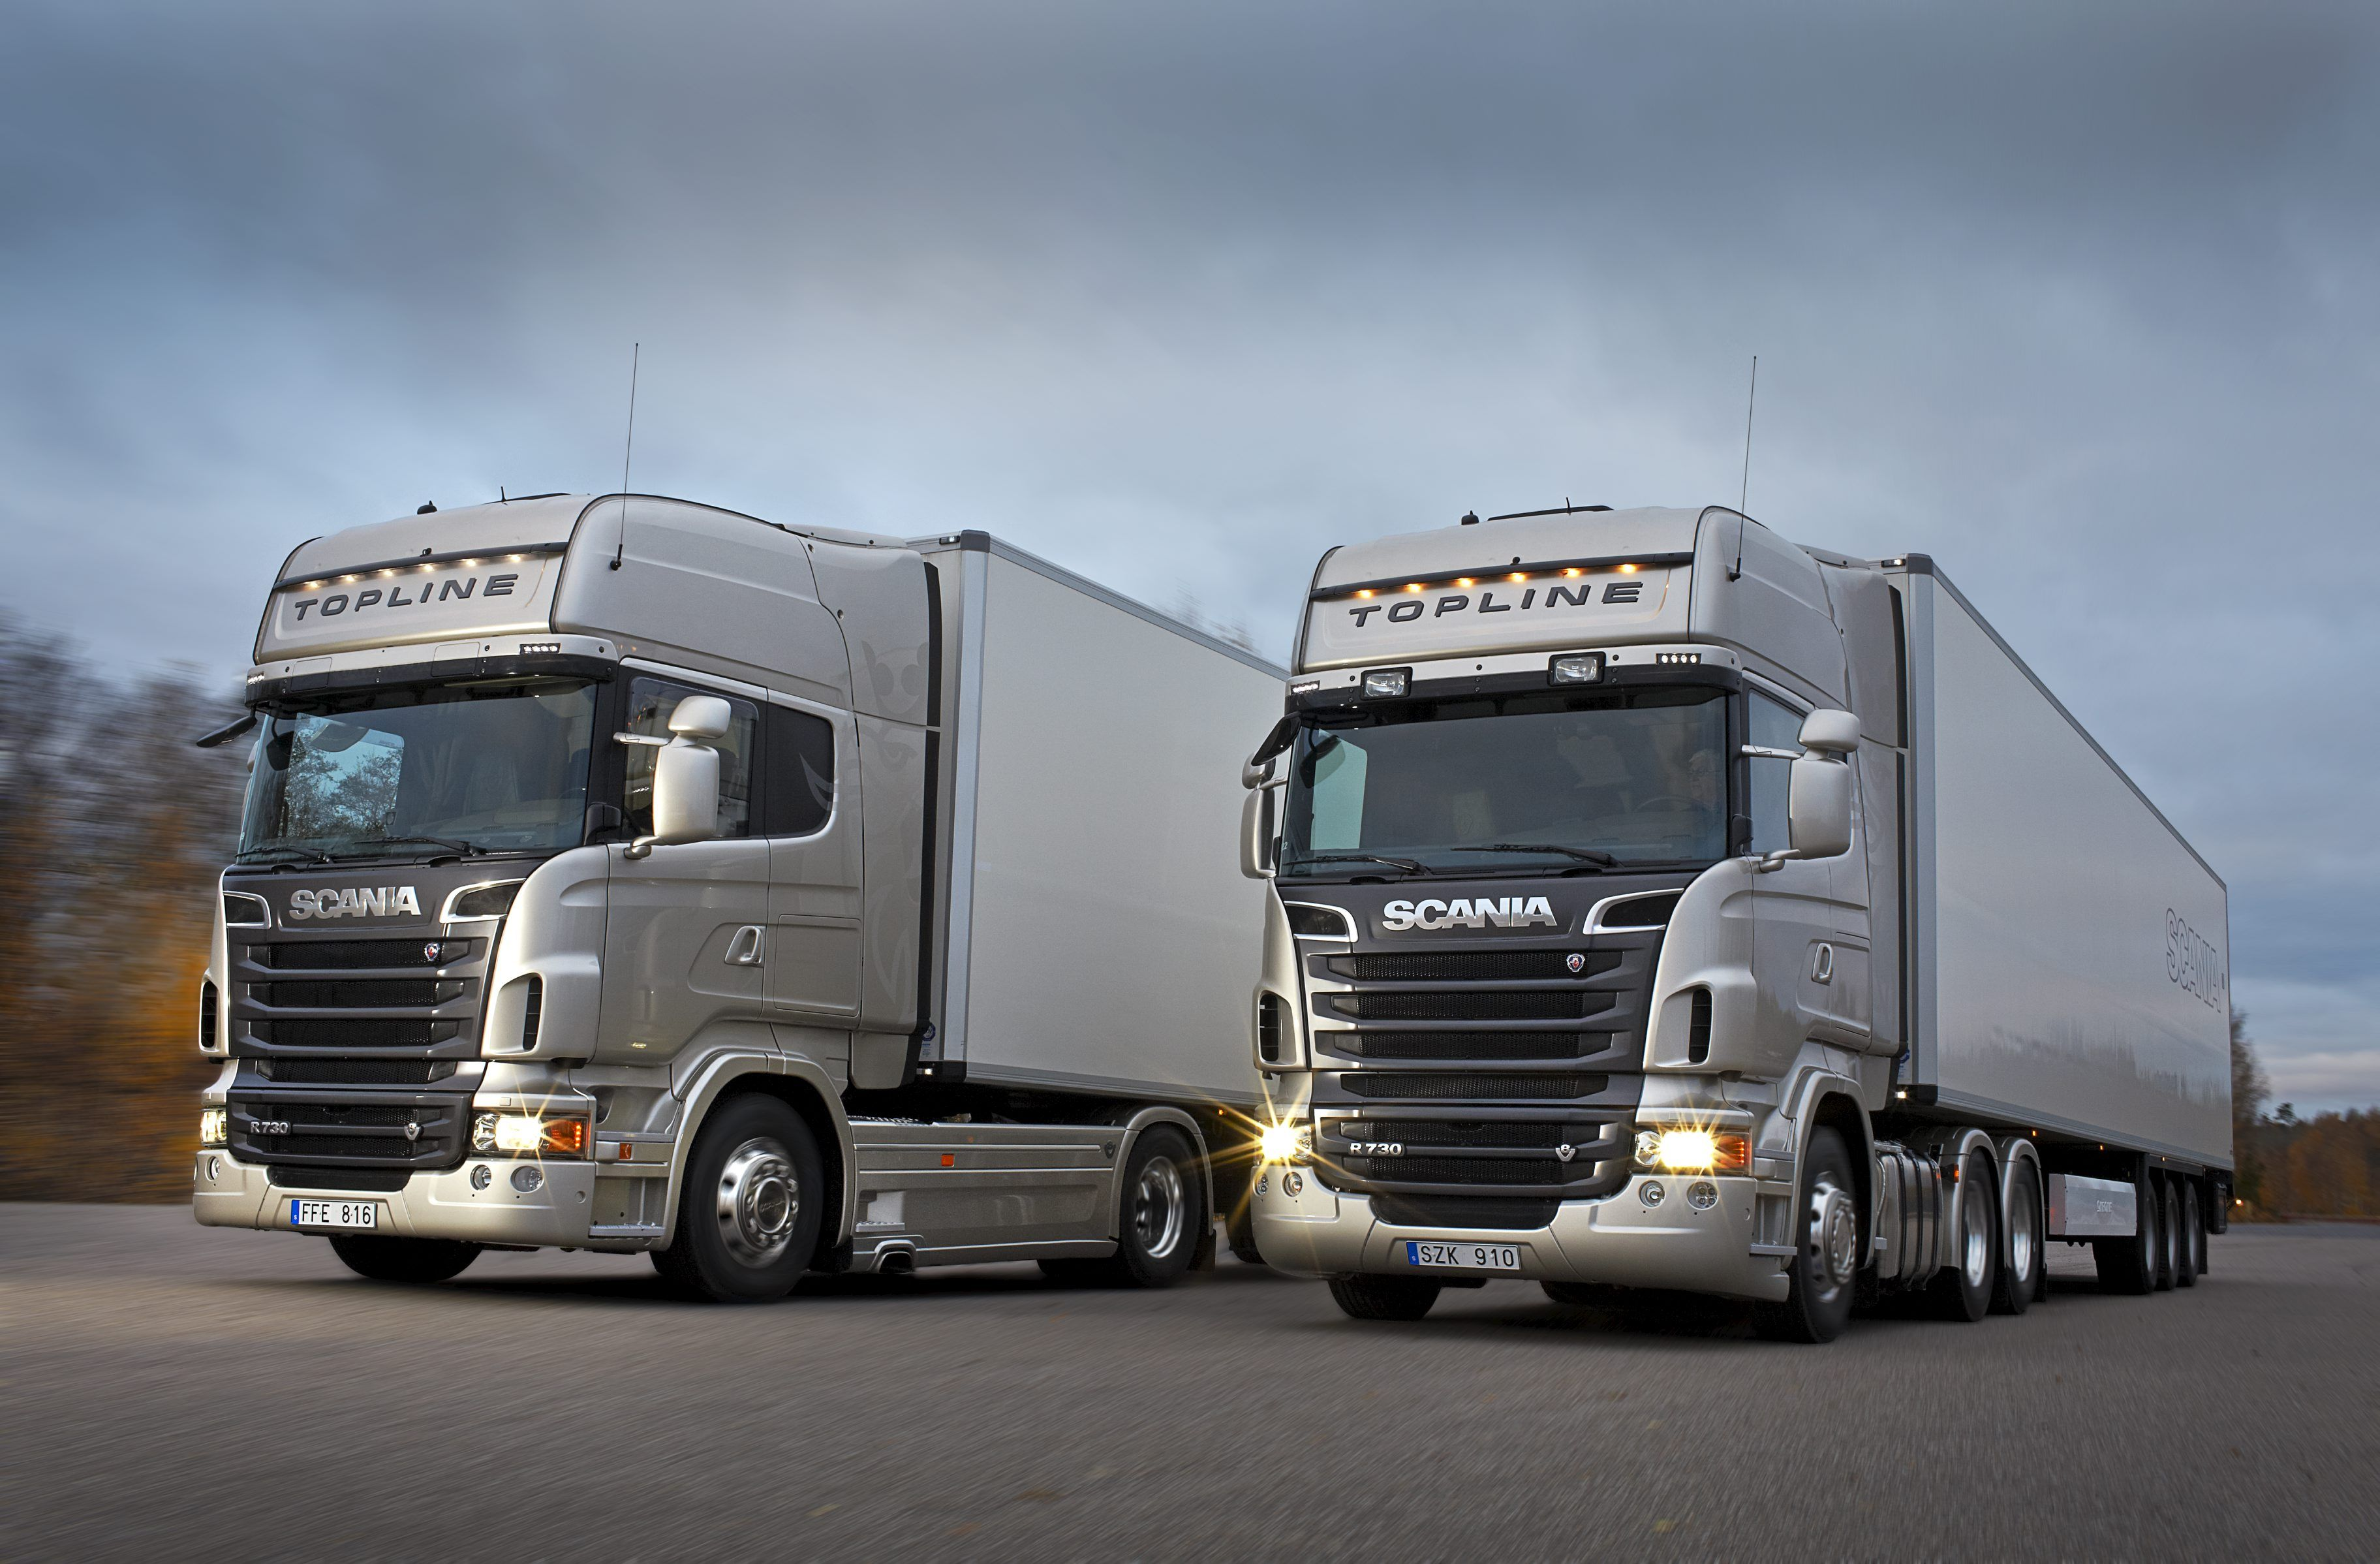 Scania Truck Vehicle Wallpapers HD Desktop and Mobile